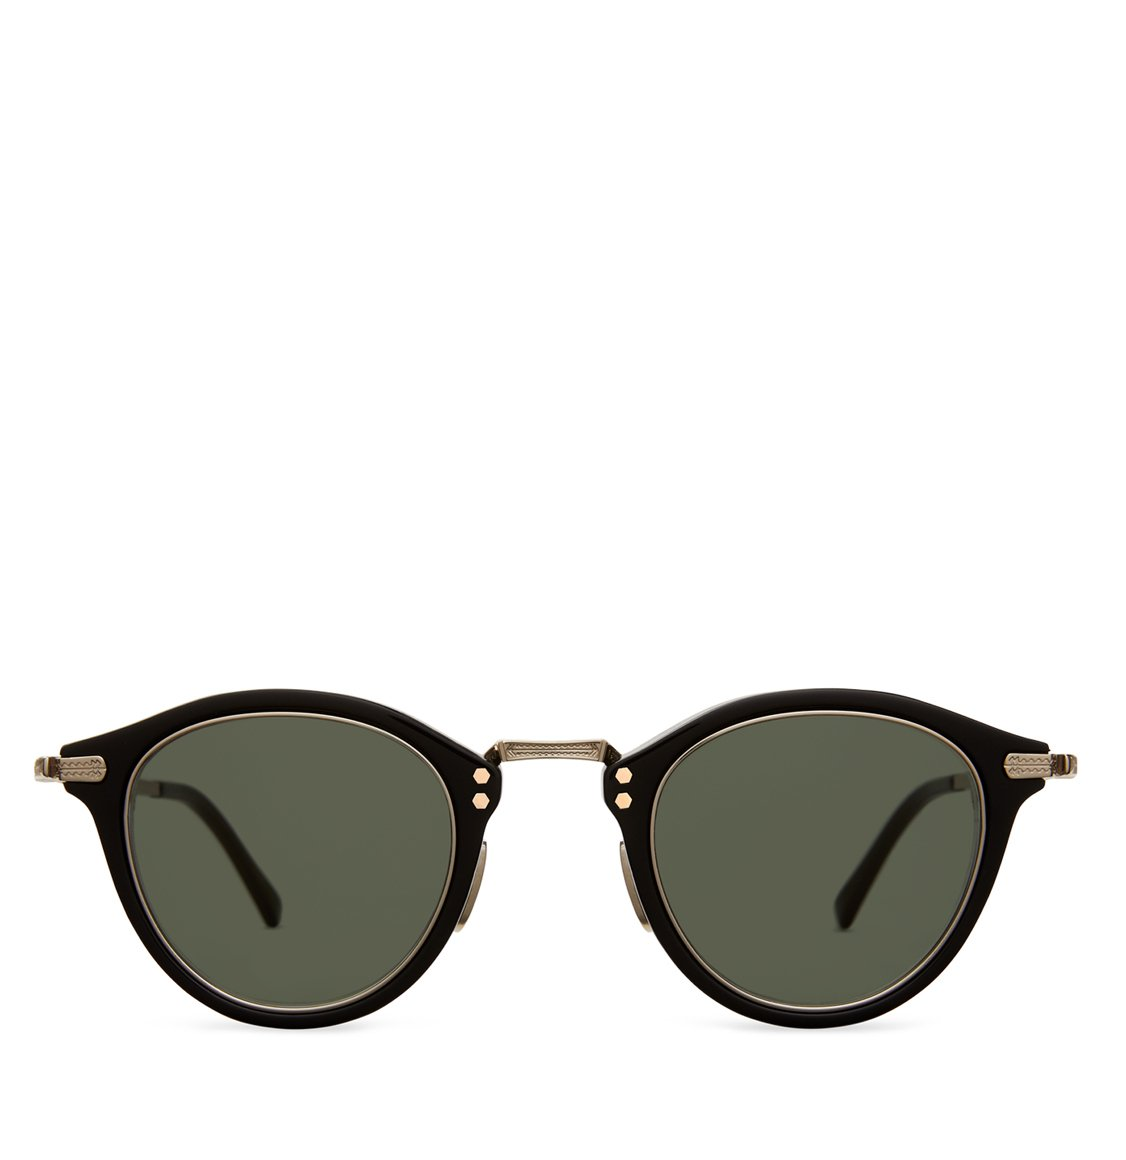 Mr Leight Rounded Black Γυαλιά Ηλίου